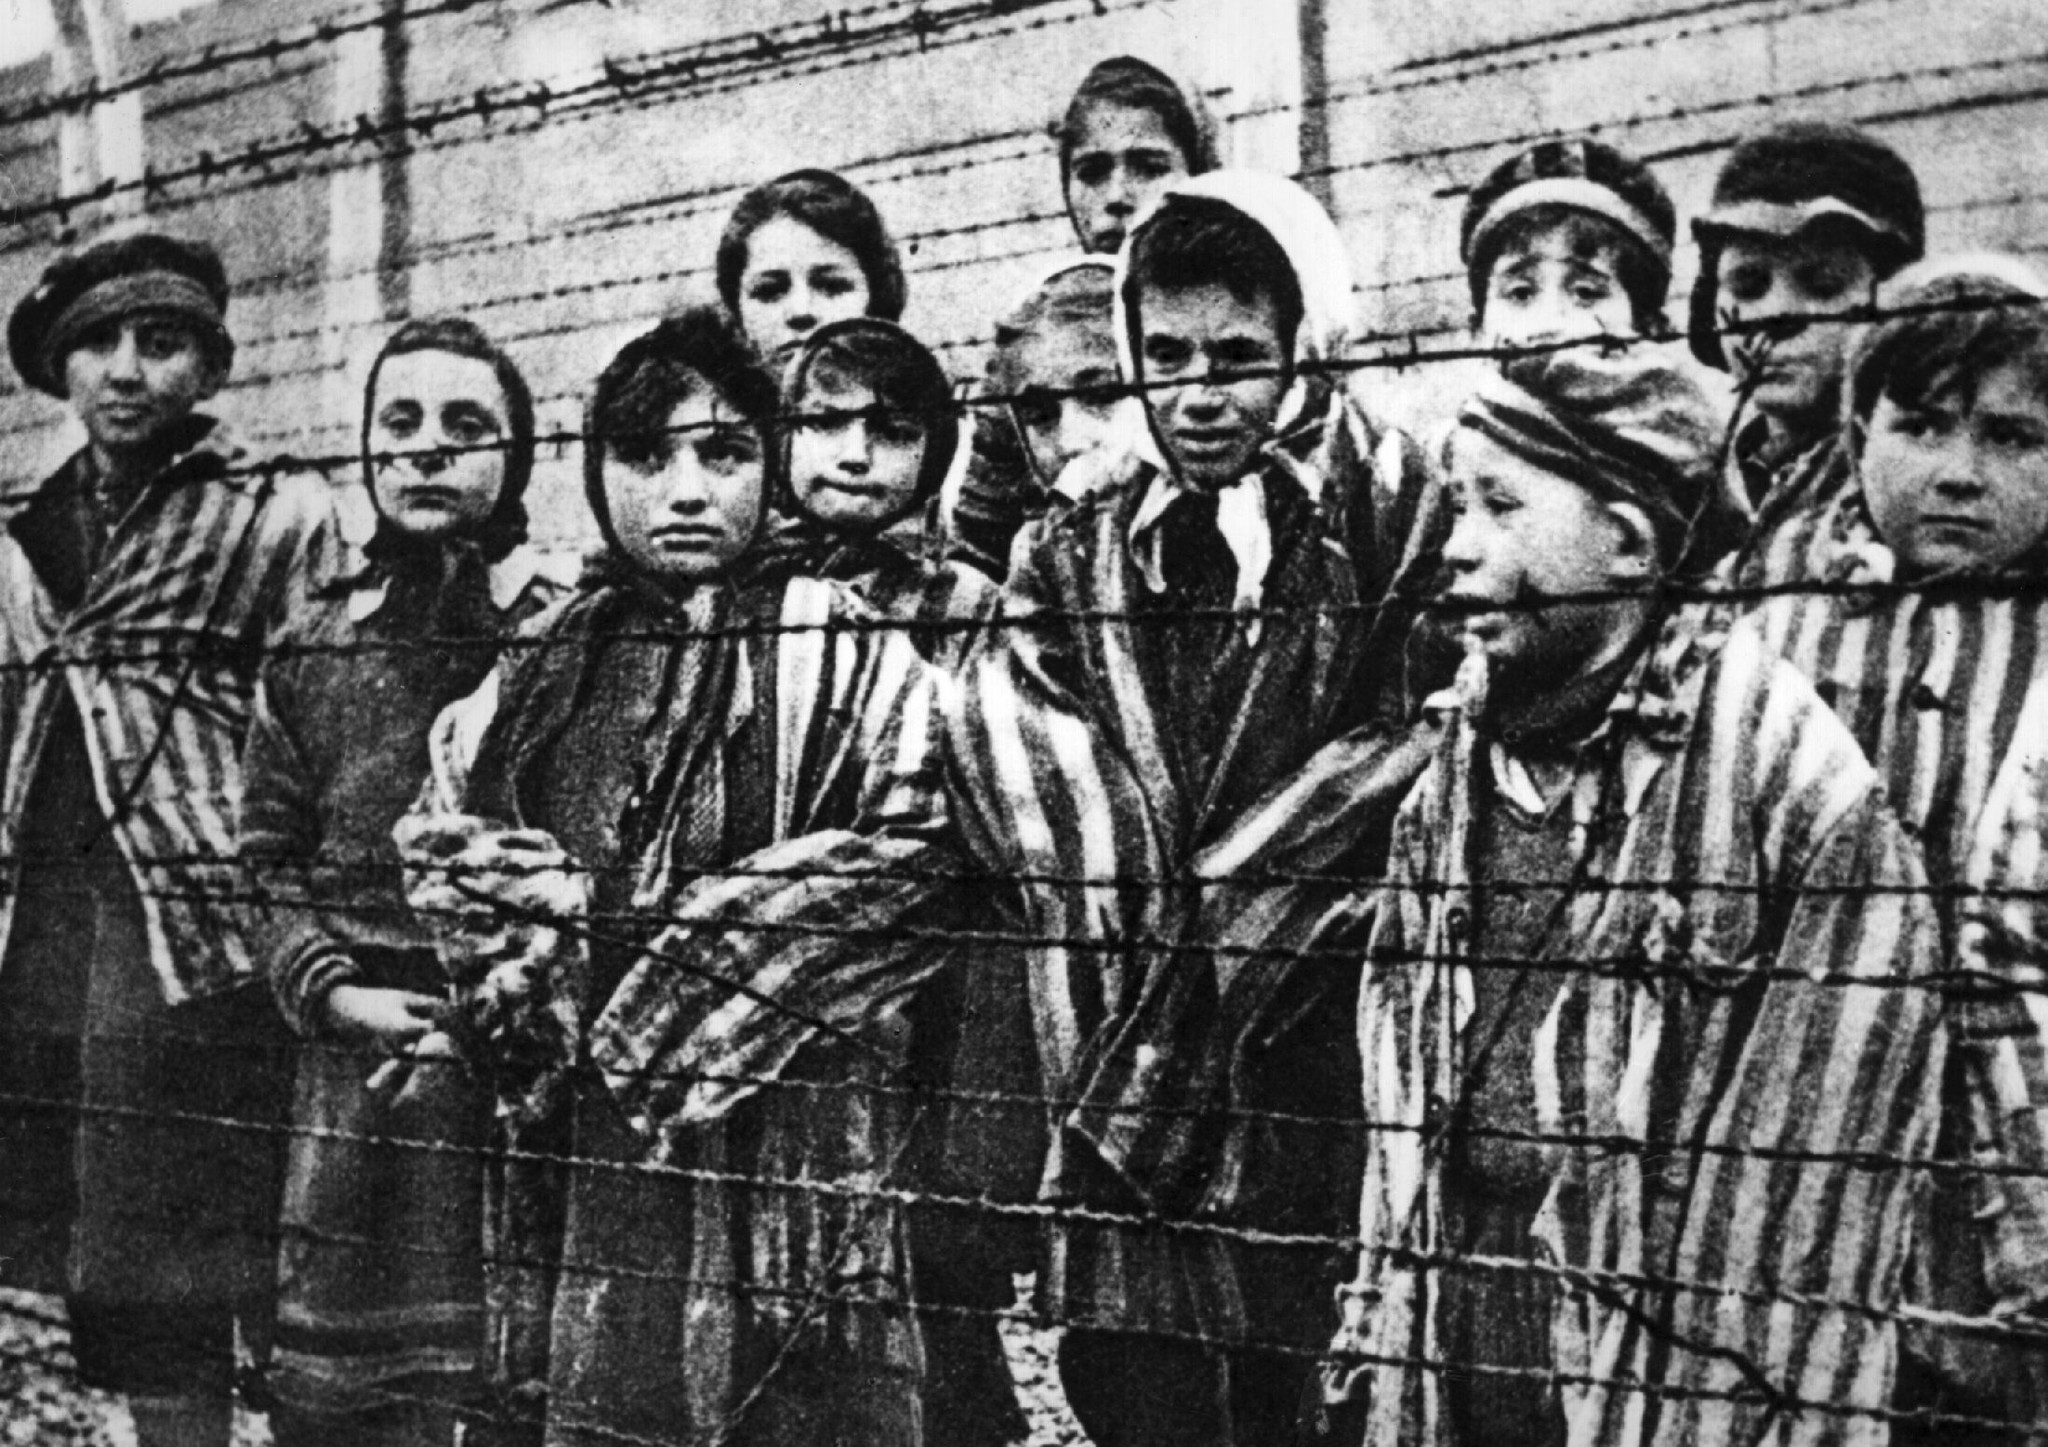 Auschwitz and beyond: The unimaginable barbarity of the German genocide of the Jews must stay in our minds